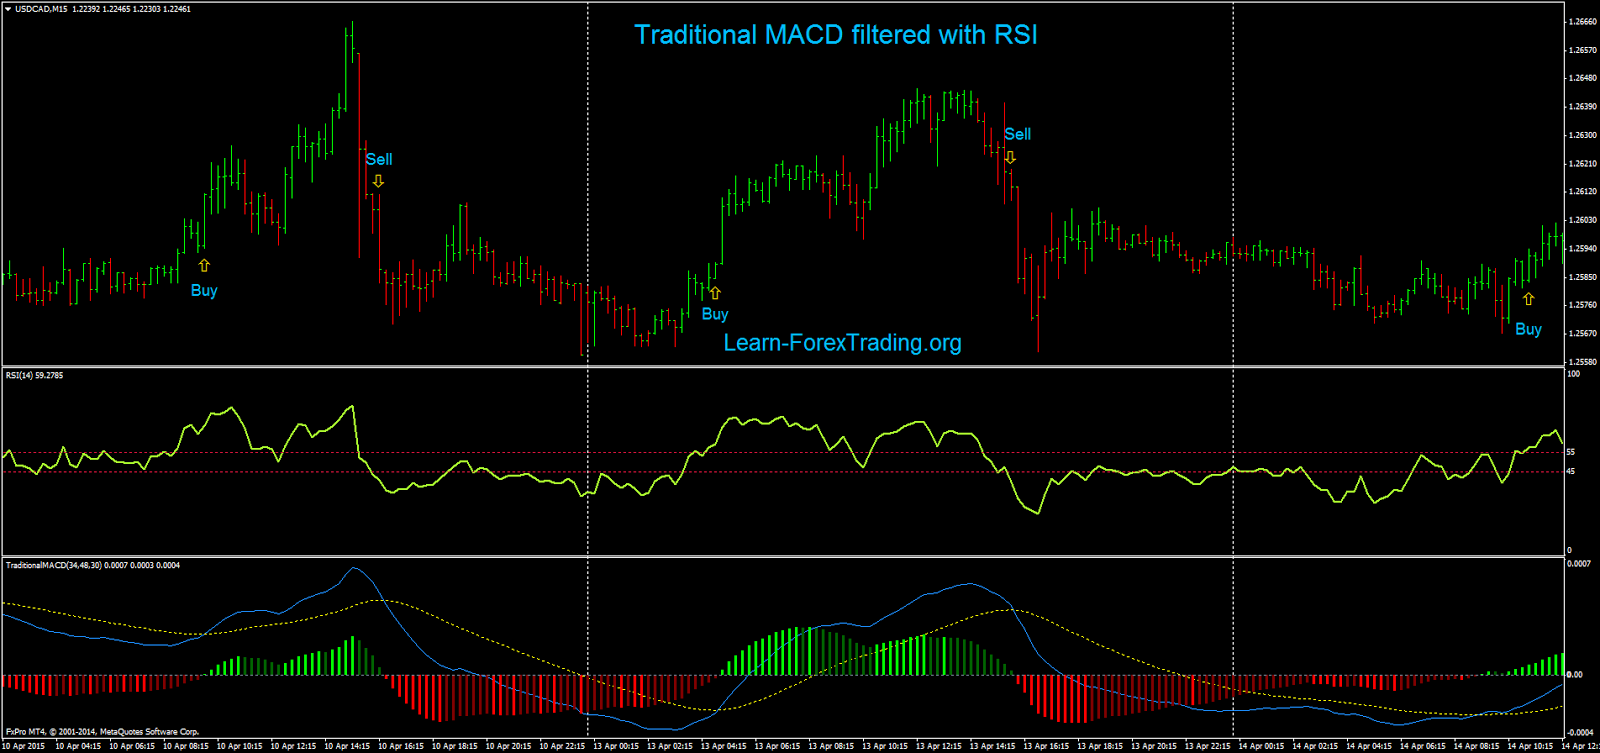 Traditional MACD filtered with RSI